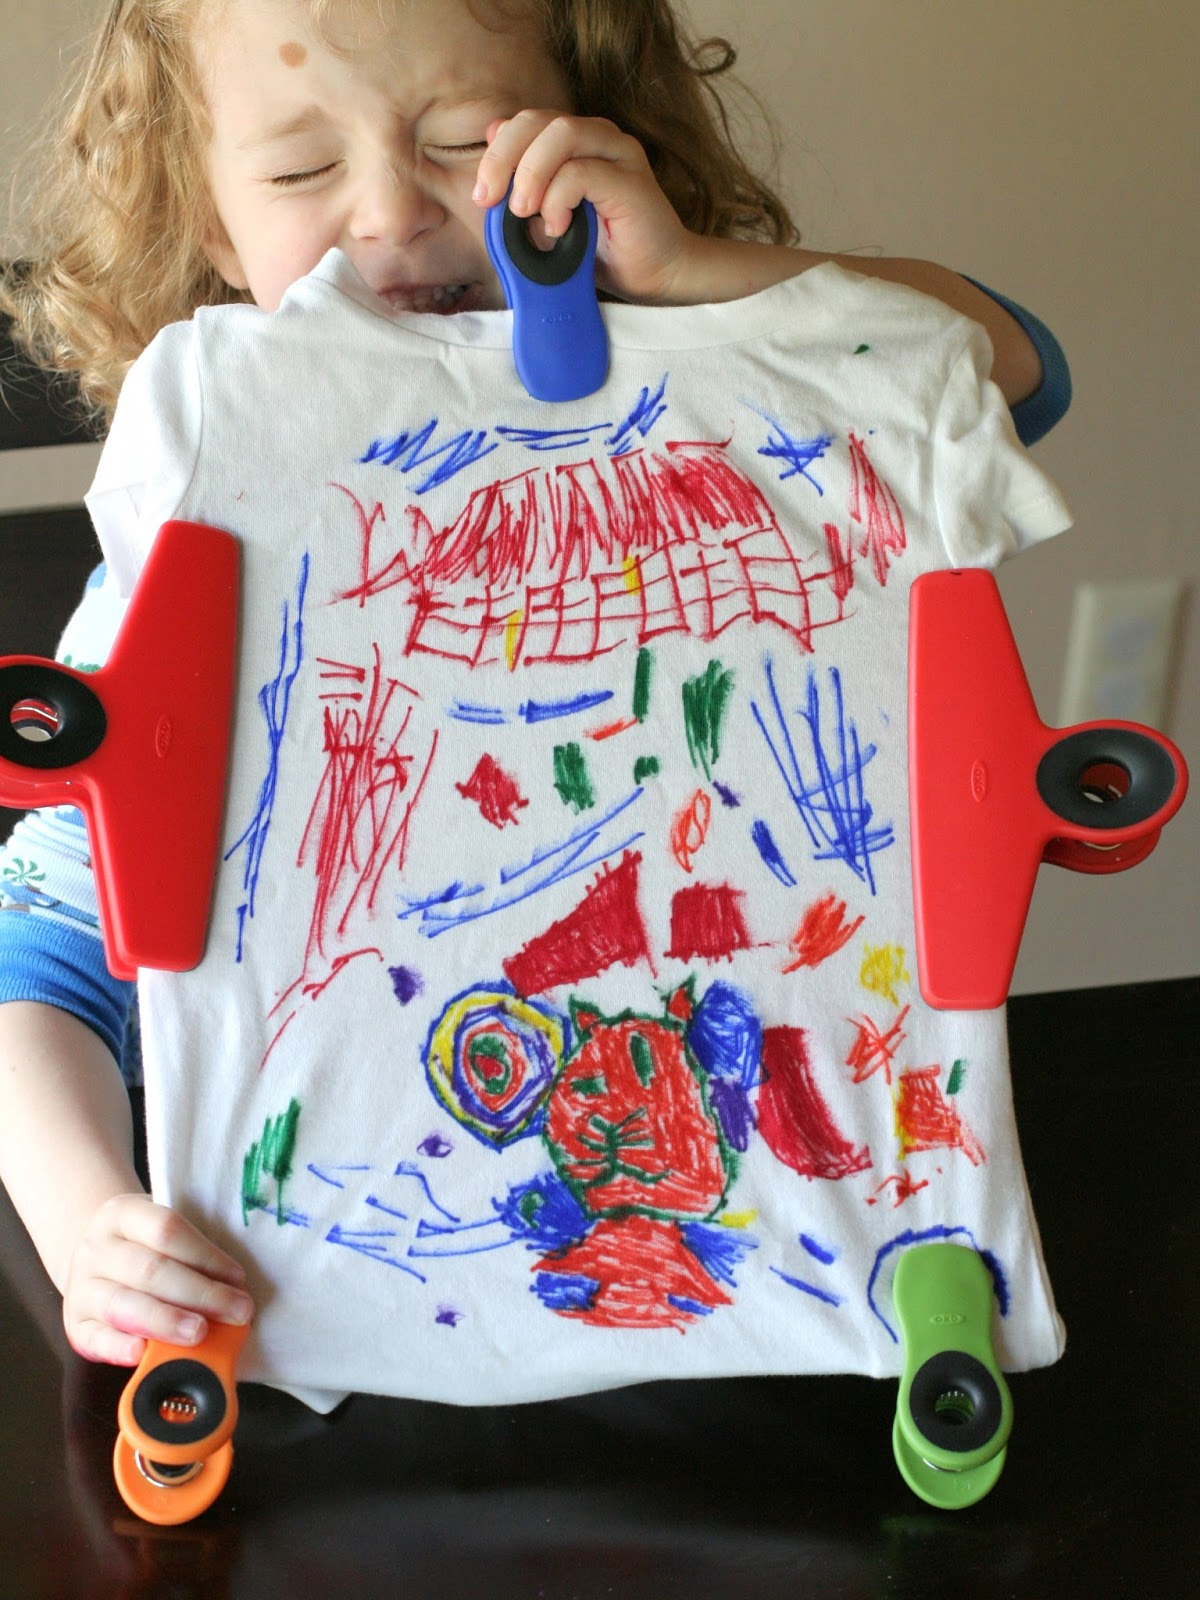 Make Your Own Shirt: Sharpie Tie Dye from Fun at Home with Kids